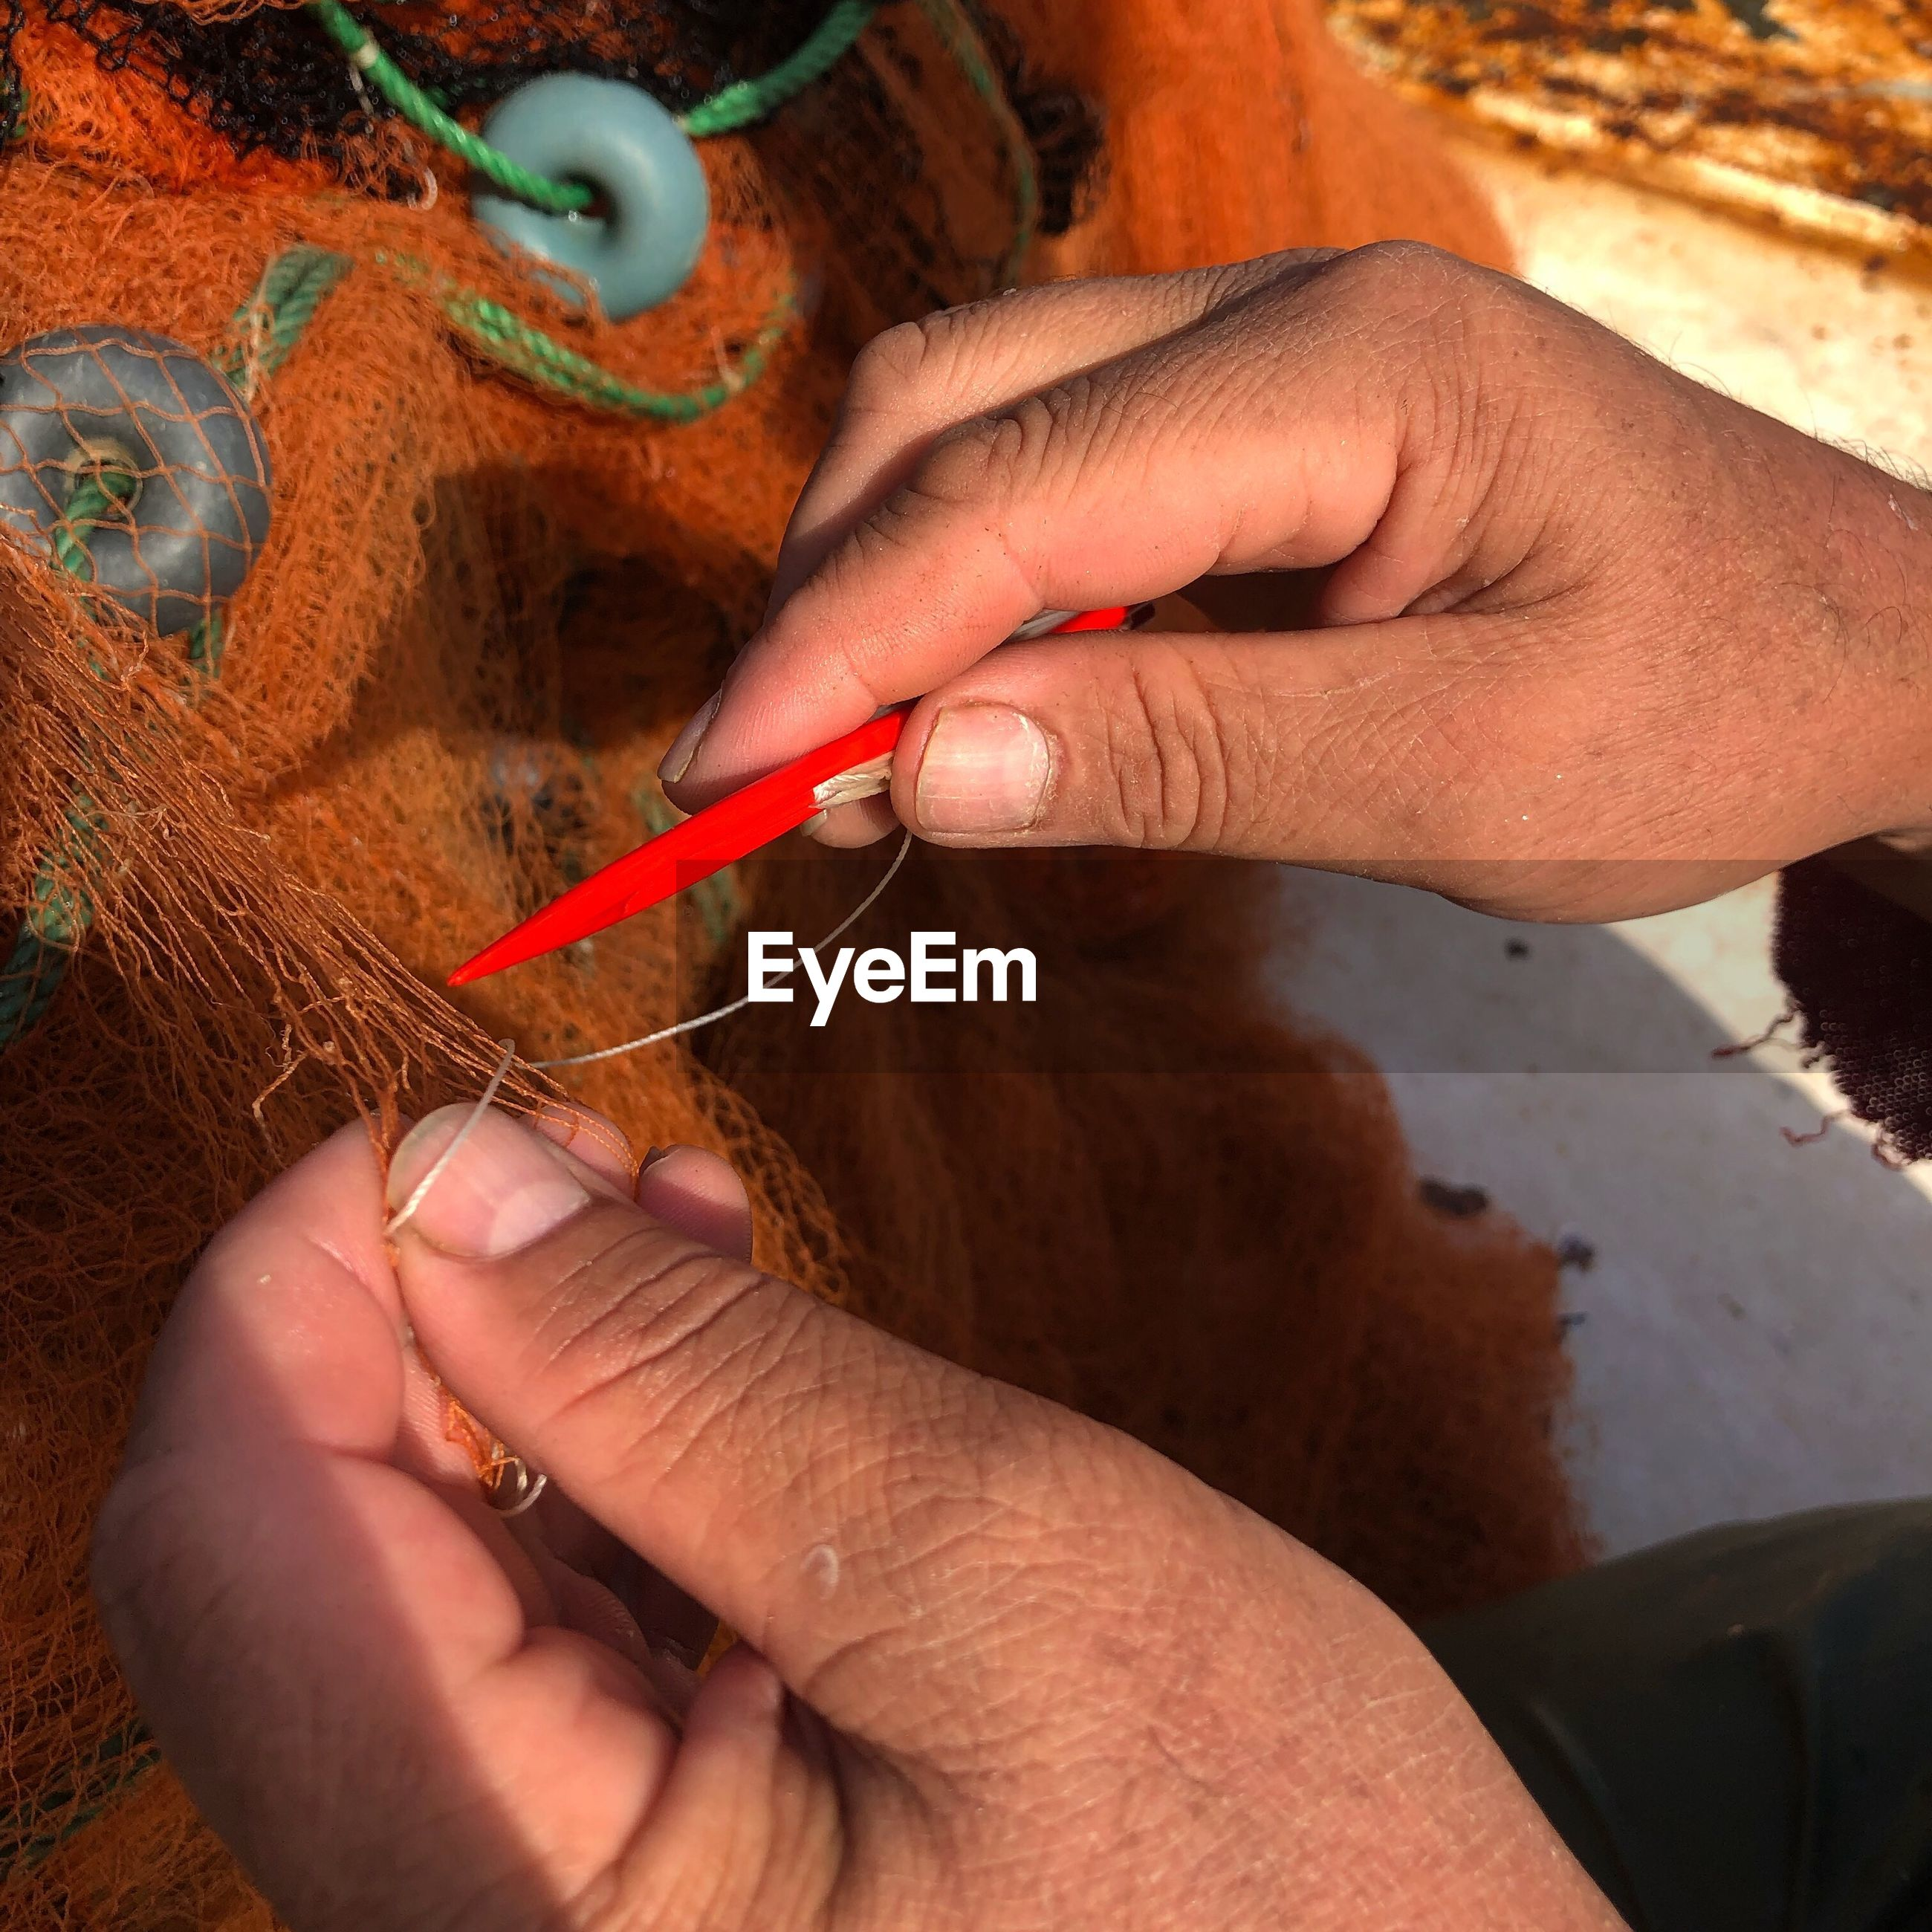 Cropped hands sewing commercial fishing net during sunny day